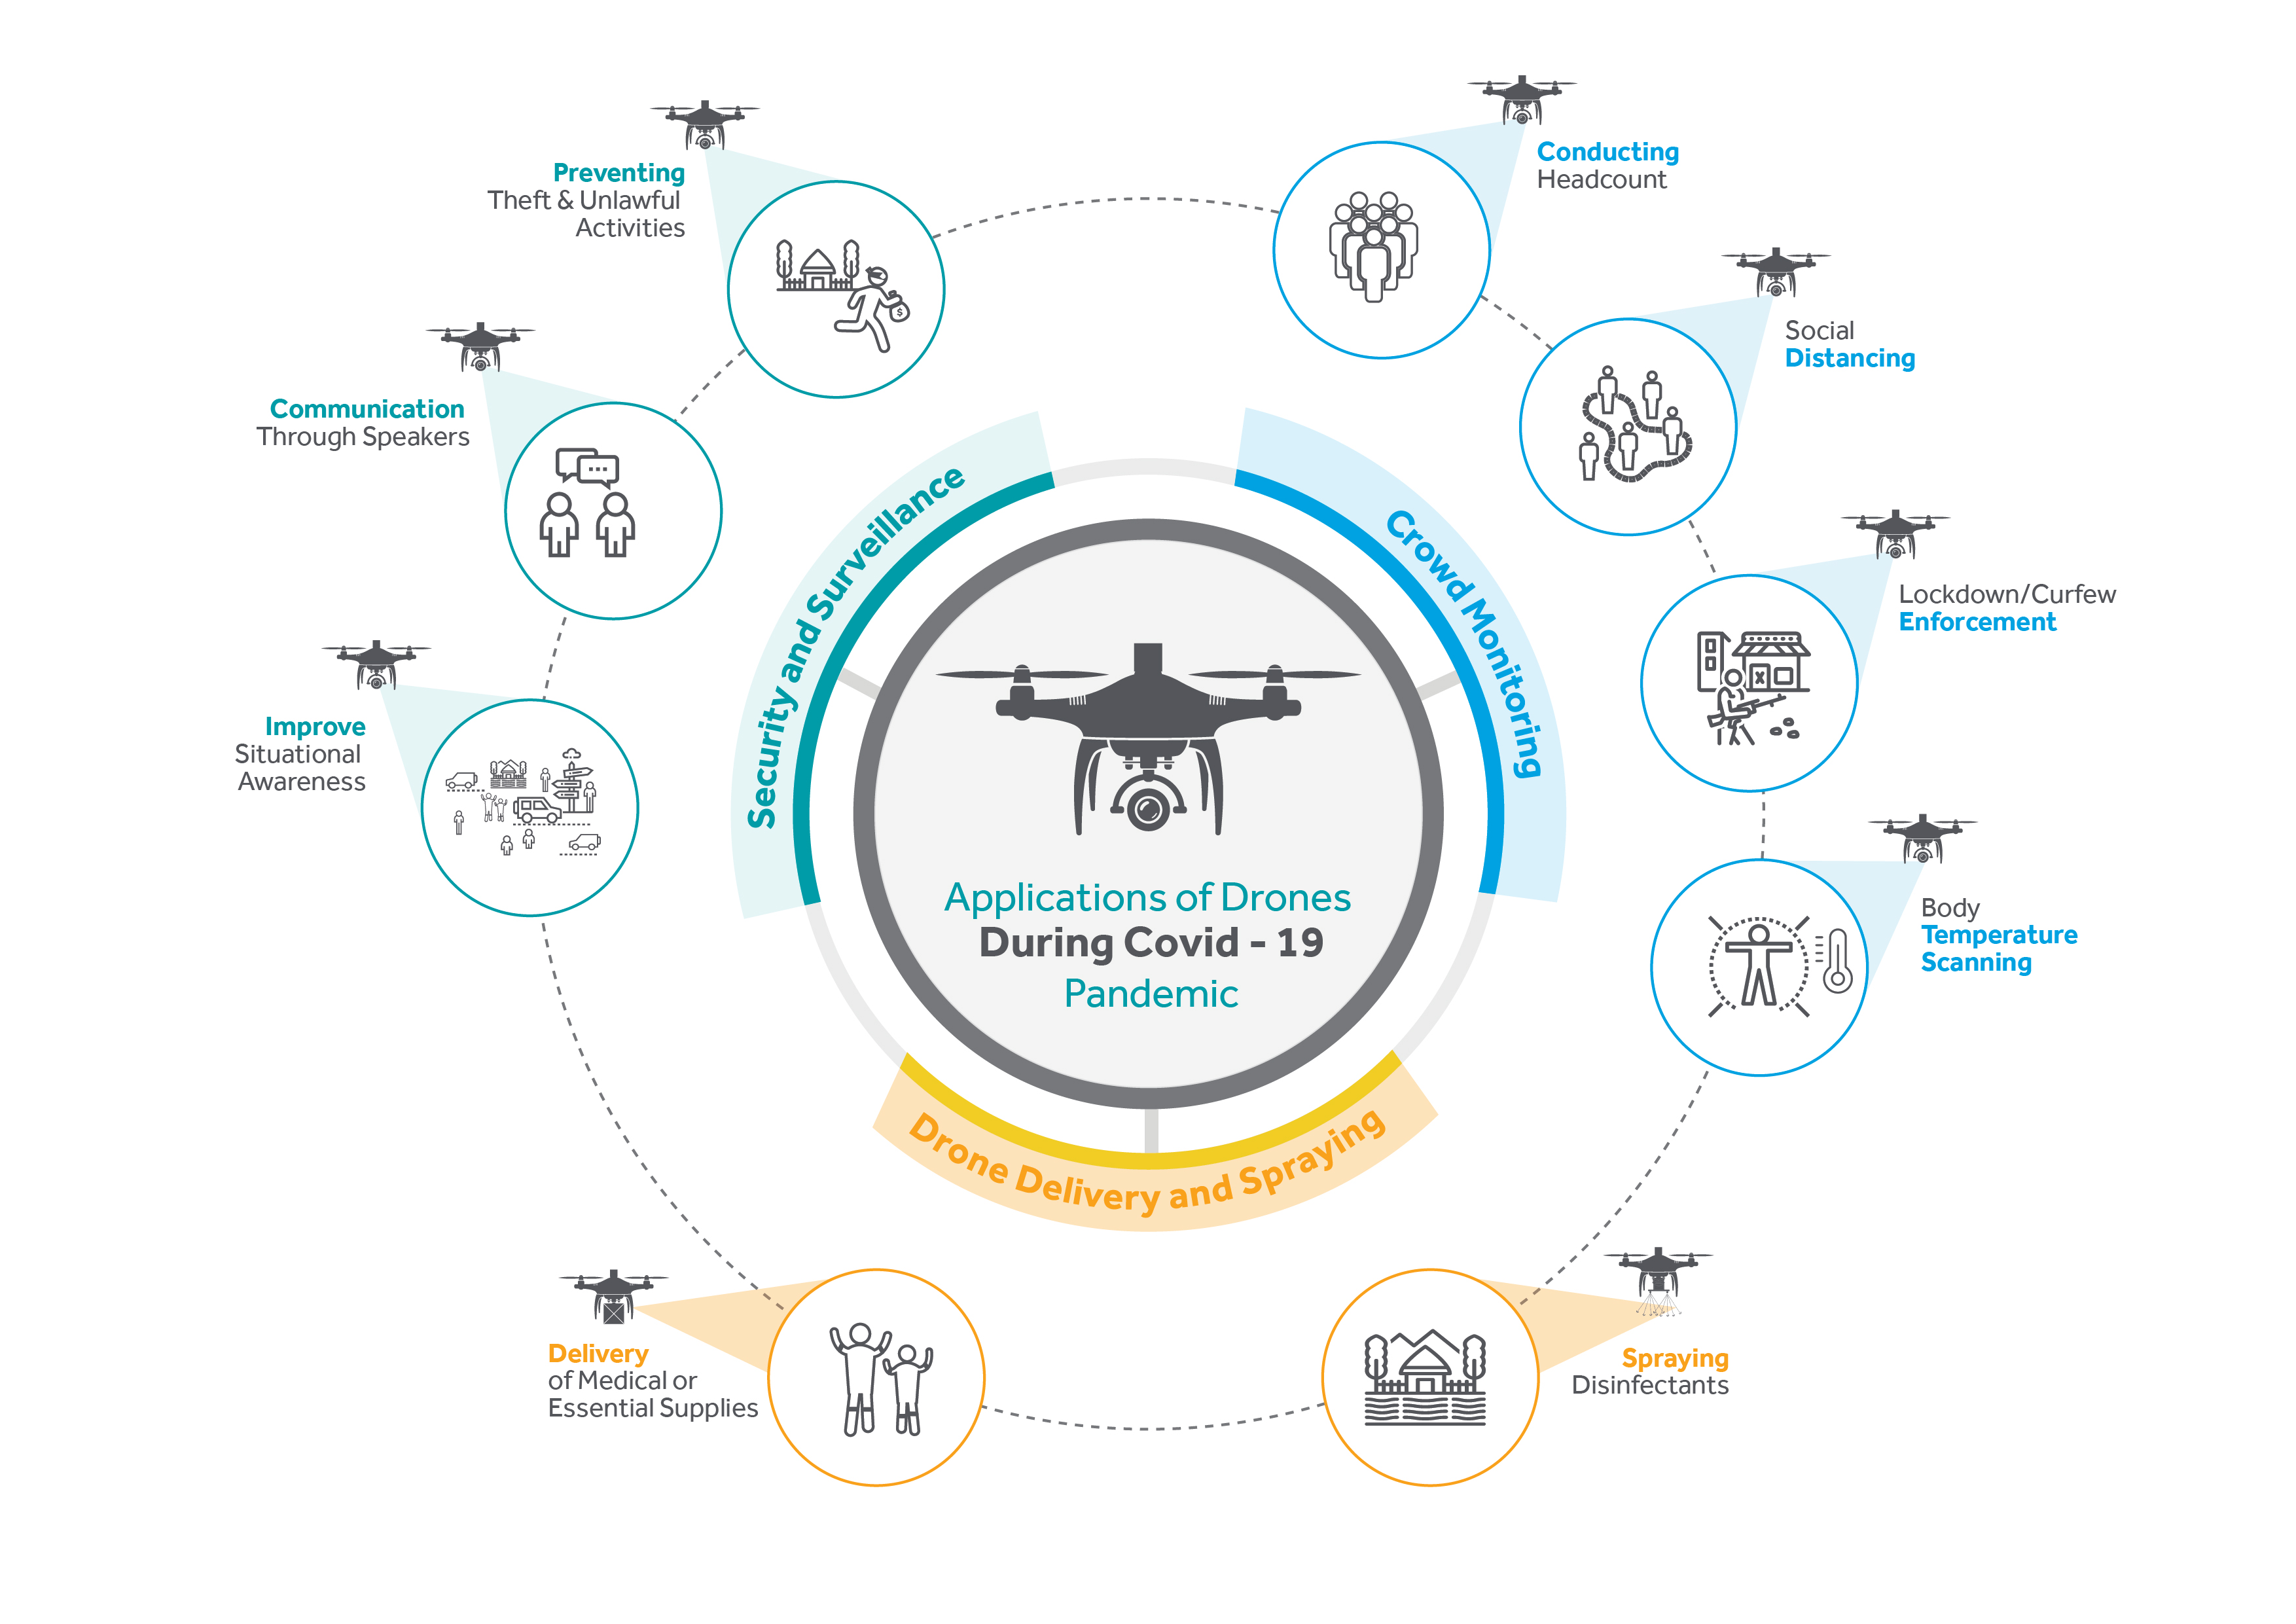 Infographic - Blog for using drones to manage covid - 0420 - 4[8]